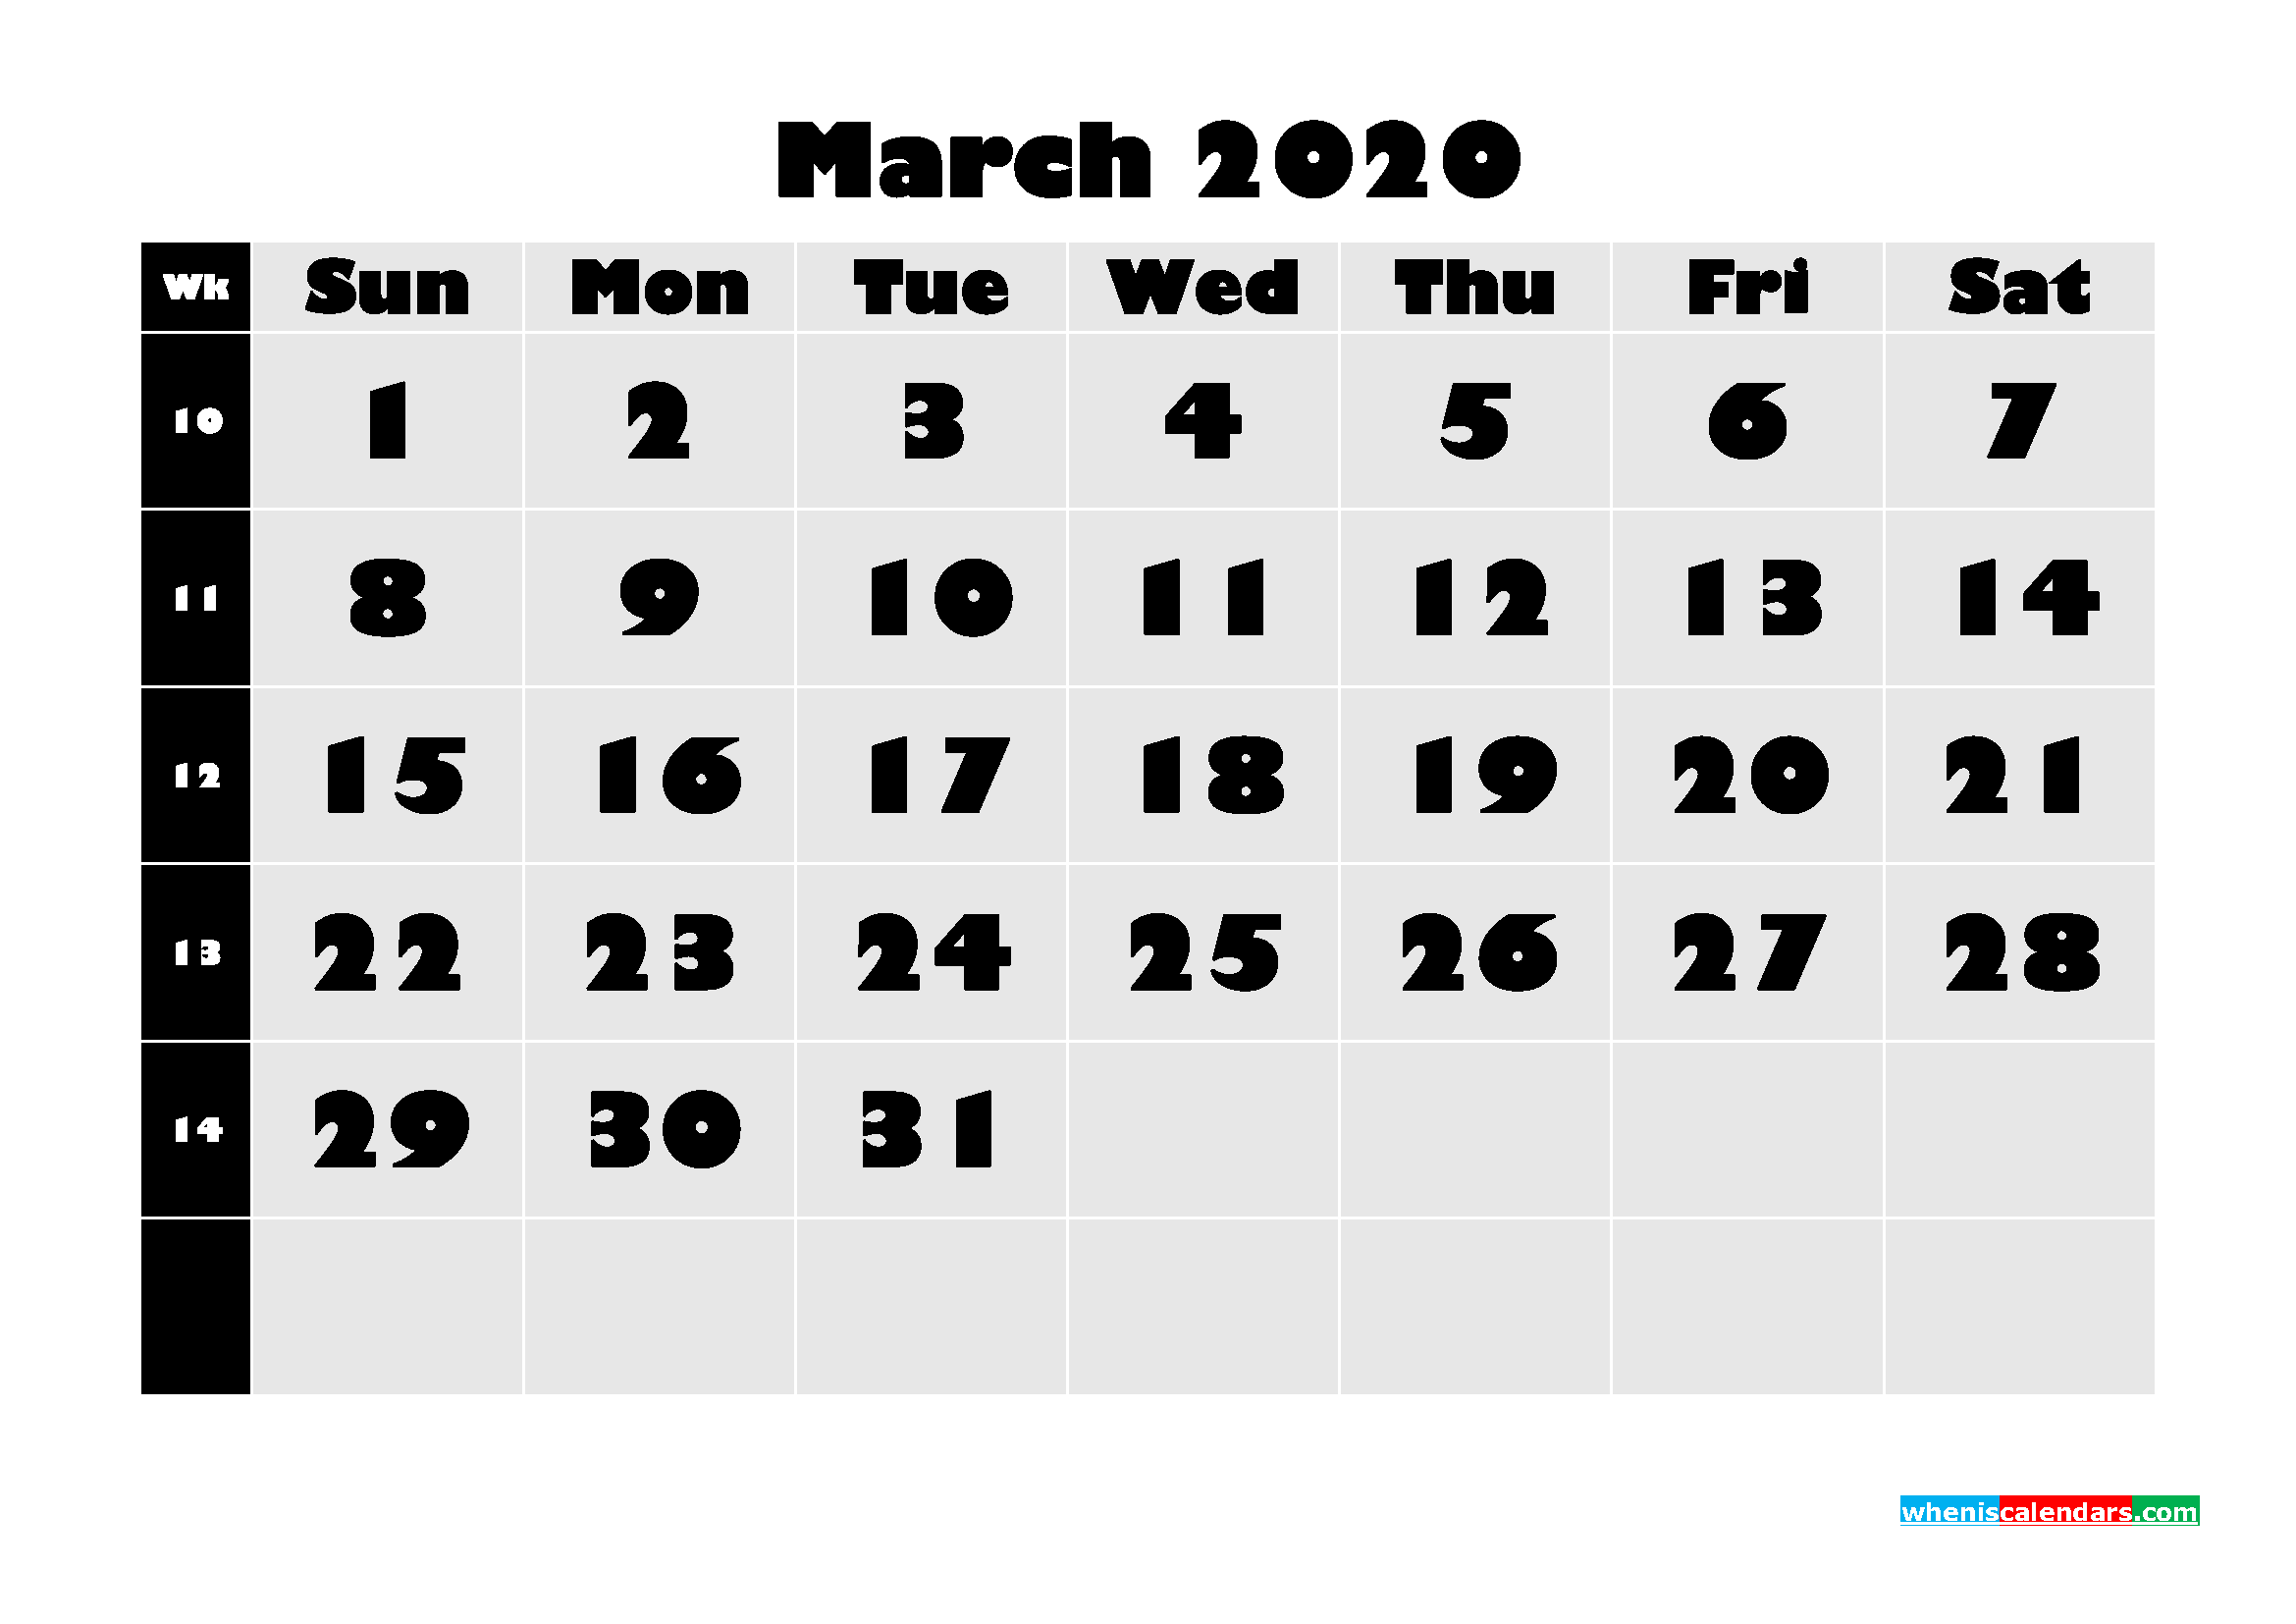 Monthly Printable Calendar 2020 March with Week Numbers